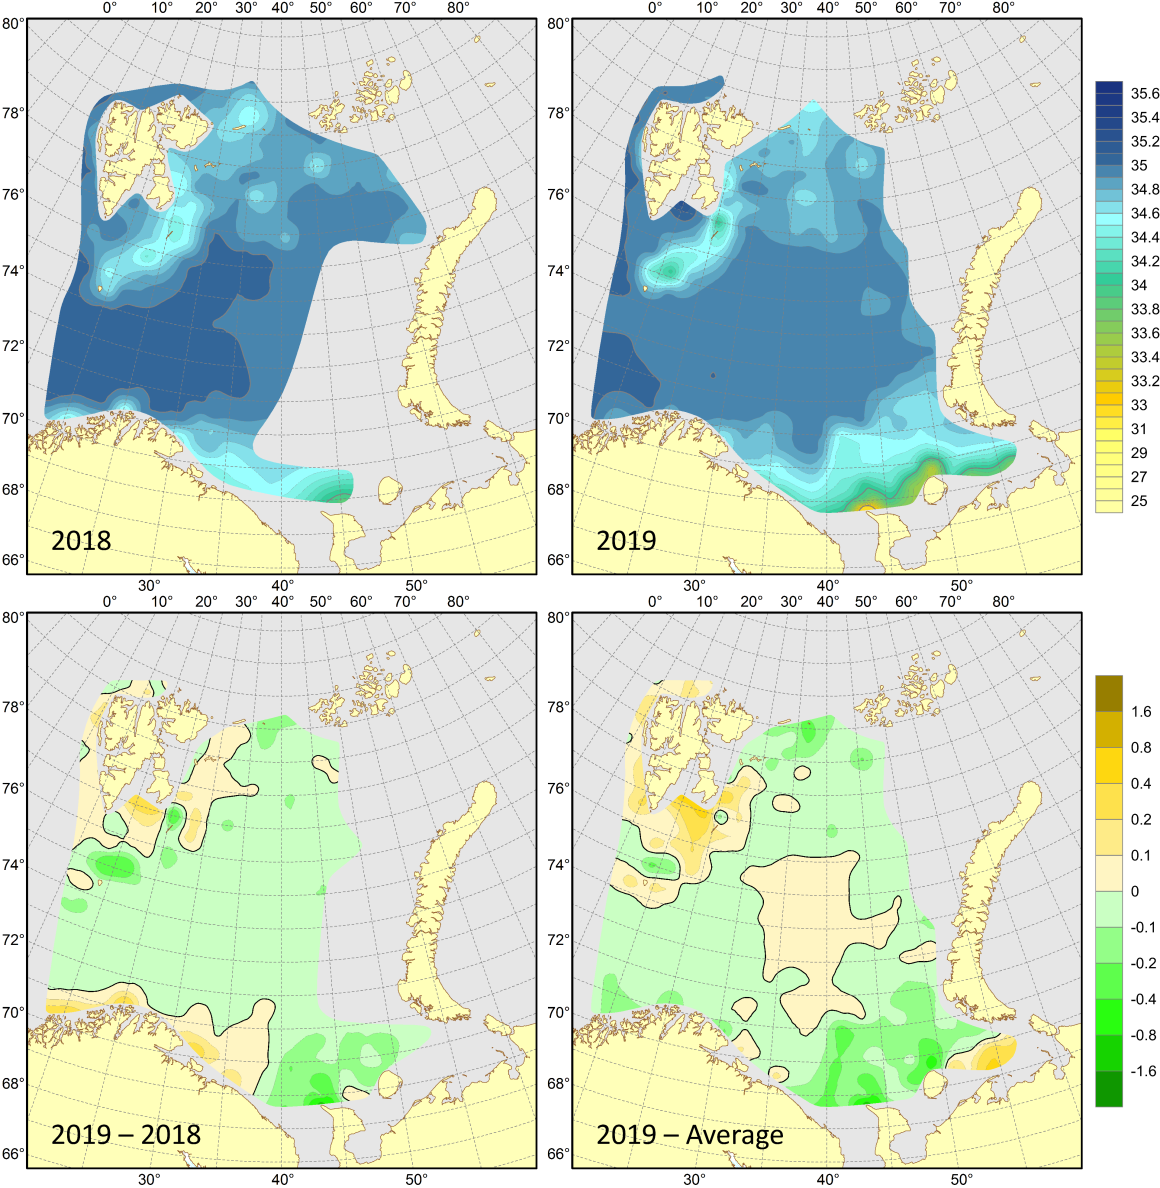 Figure 3.1.13. Bottom salinities in August–September 2018 (upper left) and 2019 (upper right), their differences between 2019 and 2018 (lower left) and anomalies in August–September 2019 (lower right).